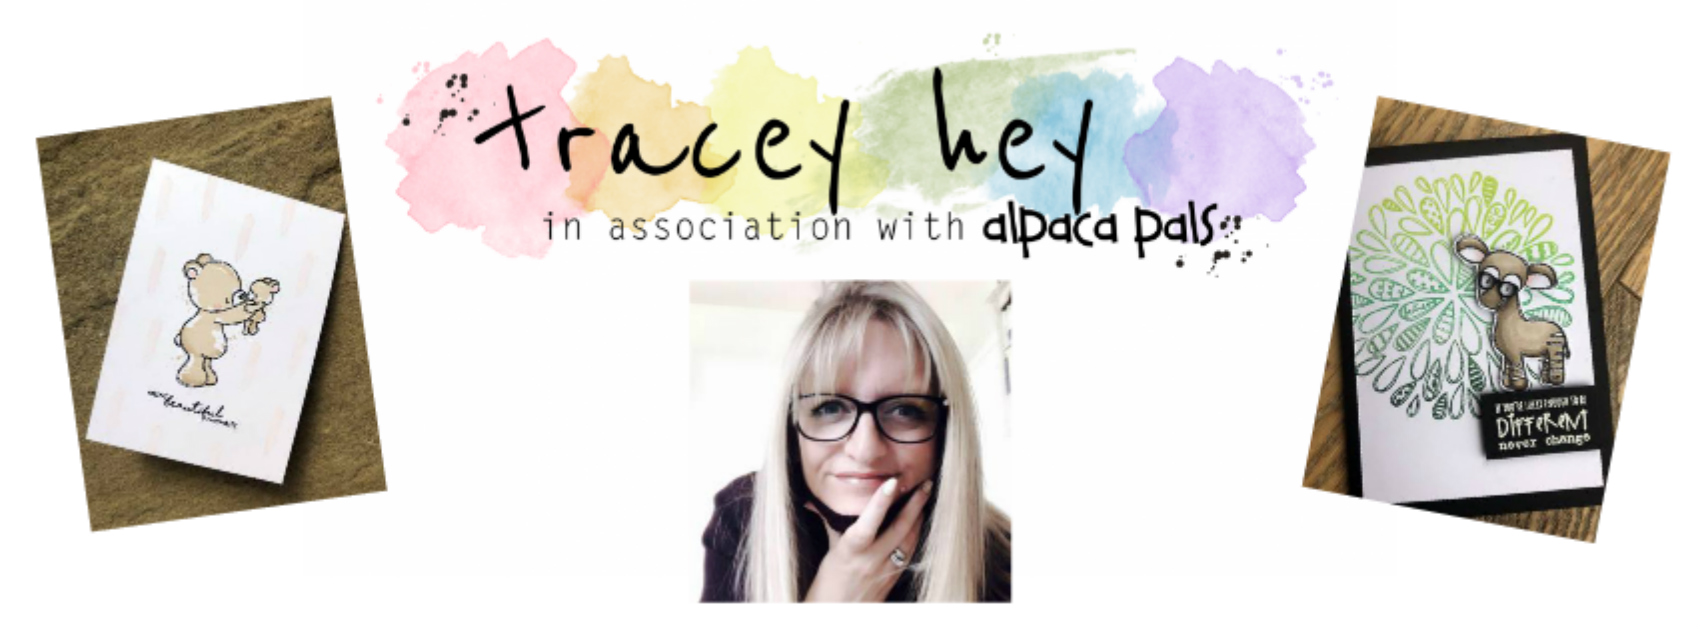 tracey1